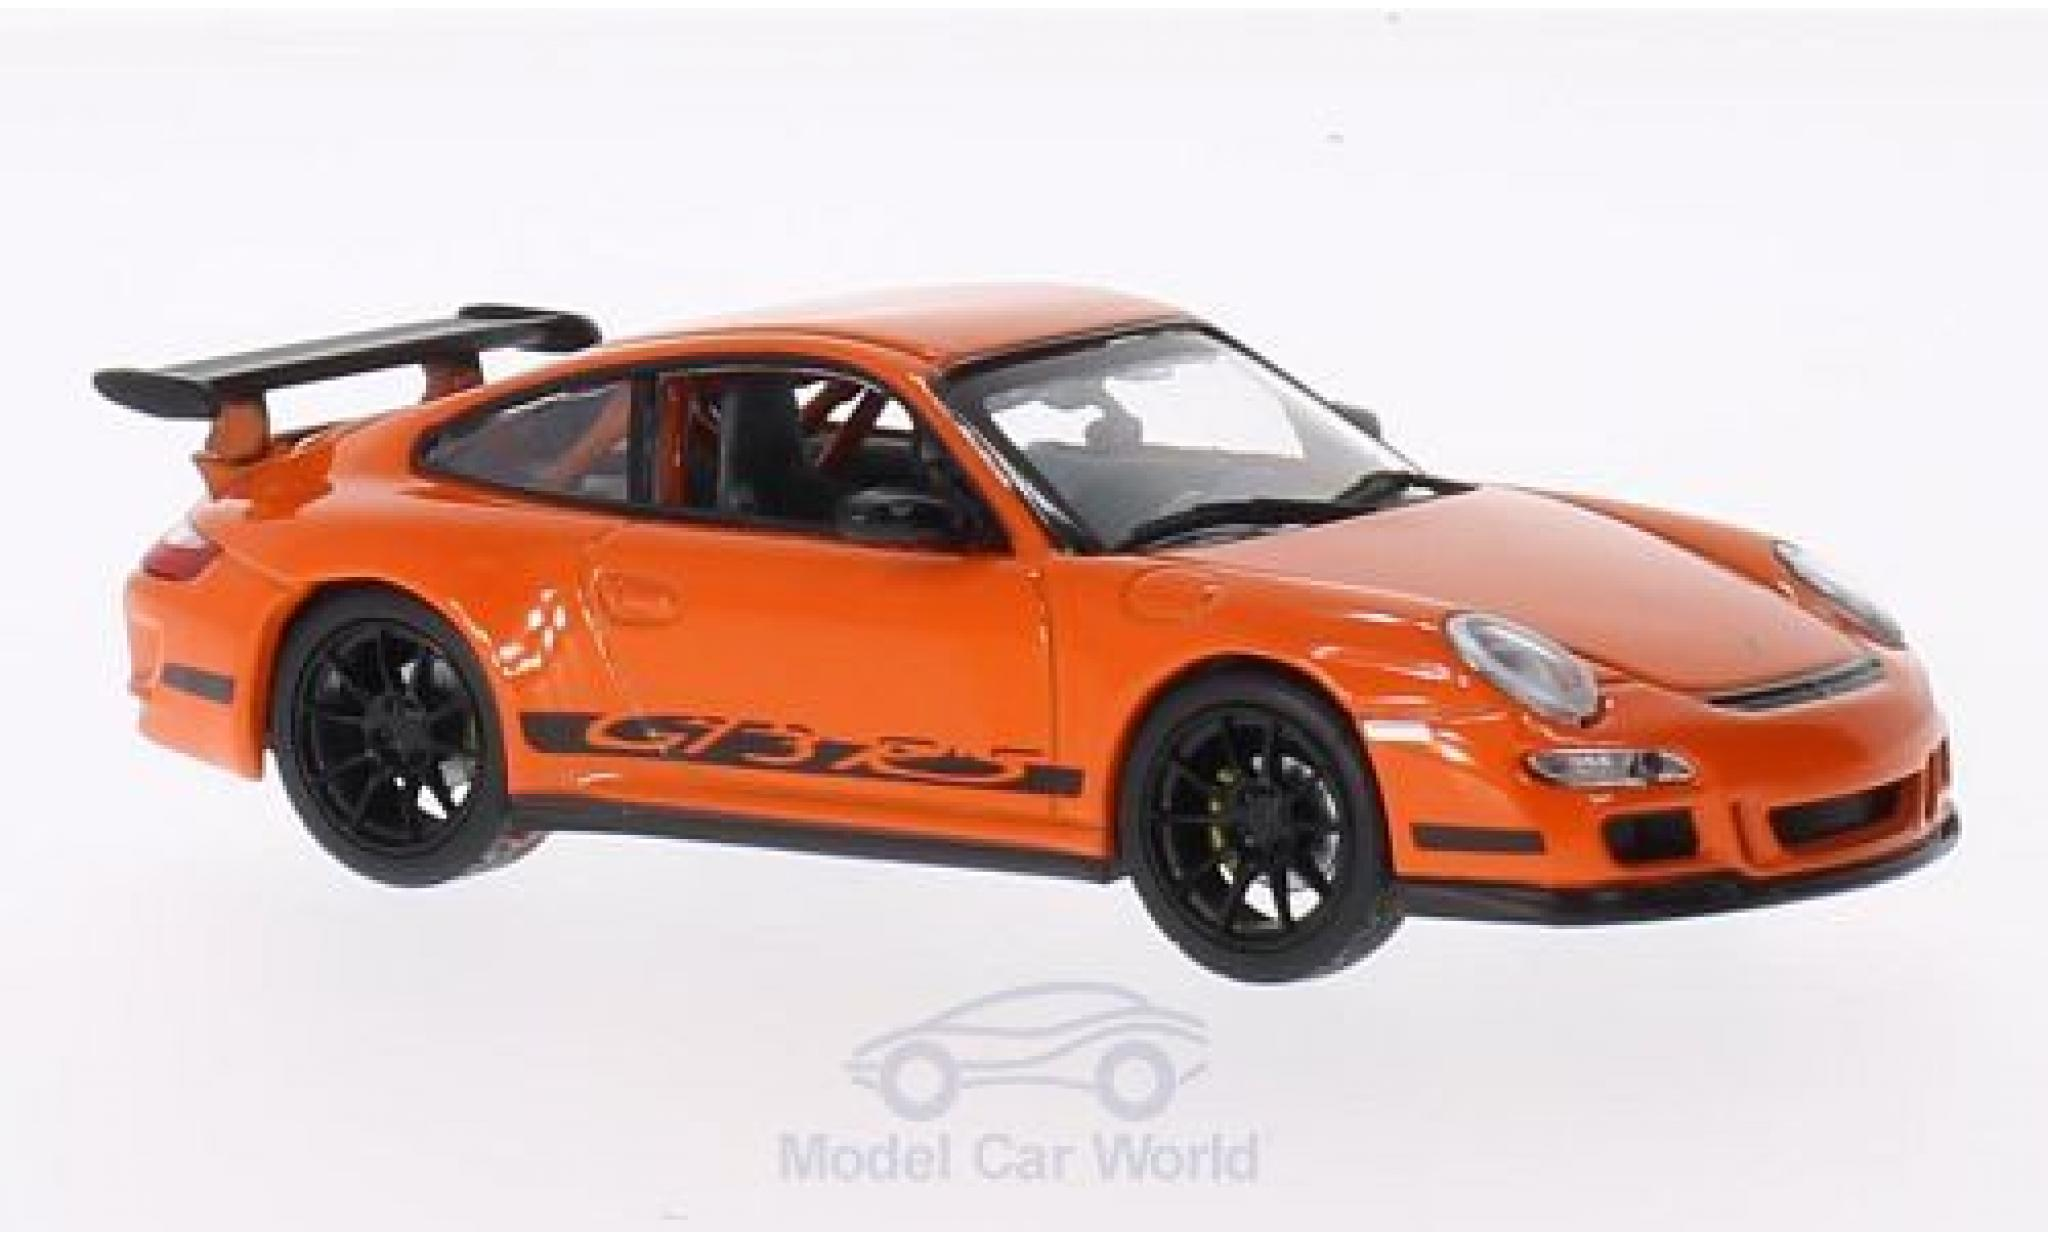 Porsche 997 GT3 RS 1/43 Lucky Die Cast Felgen u. Streifen black orange